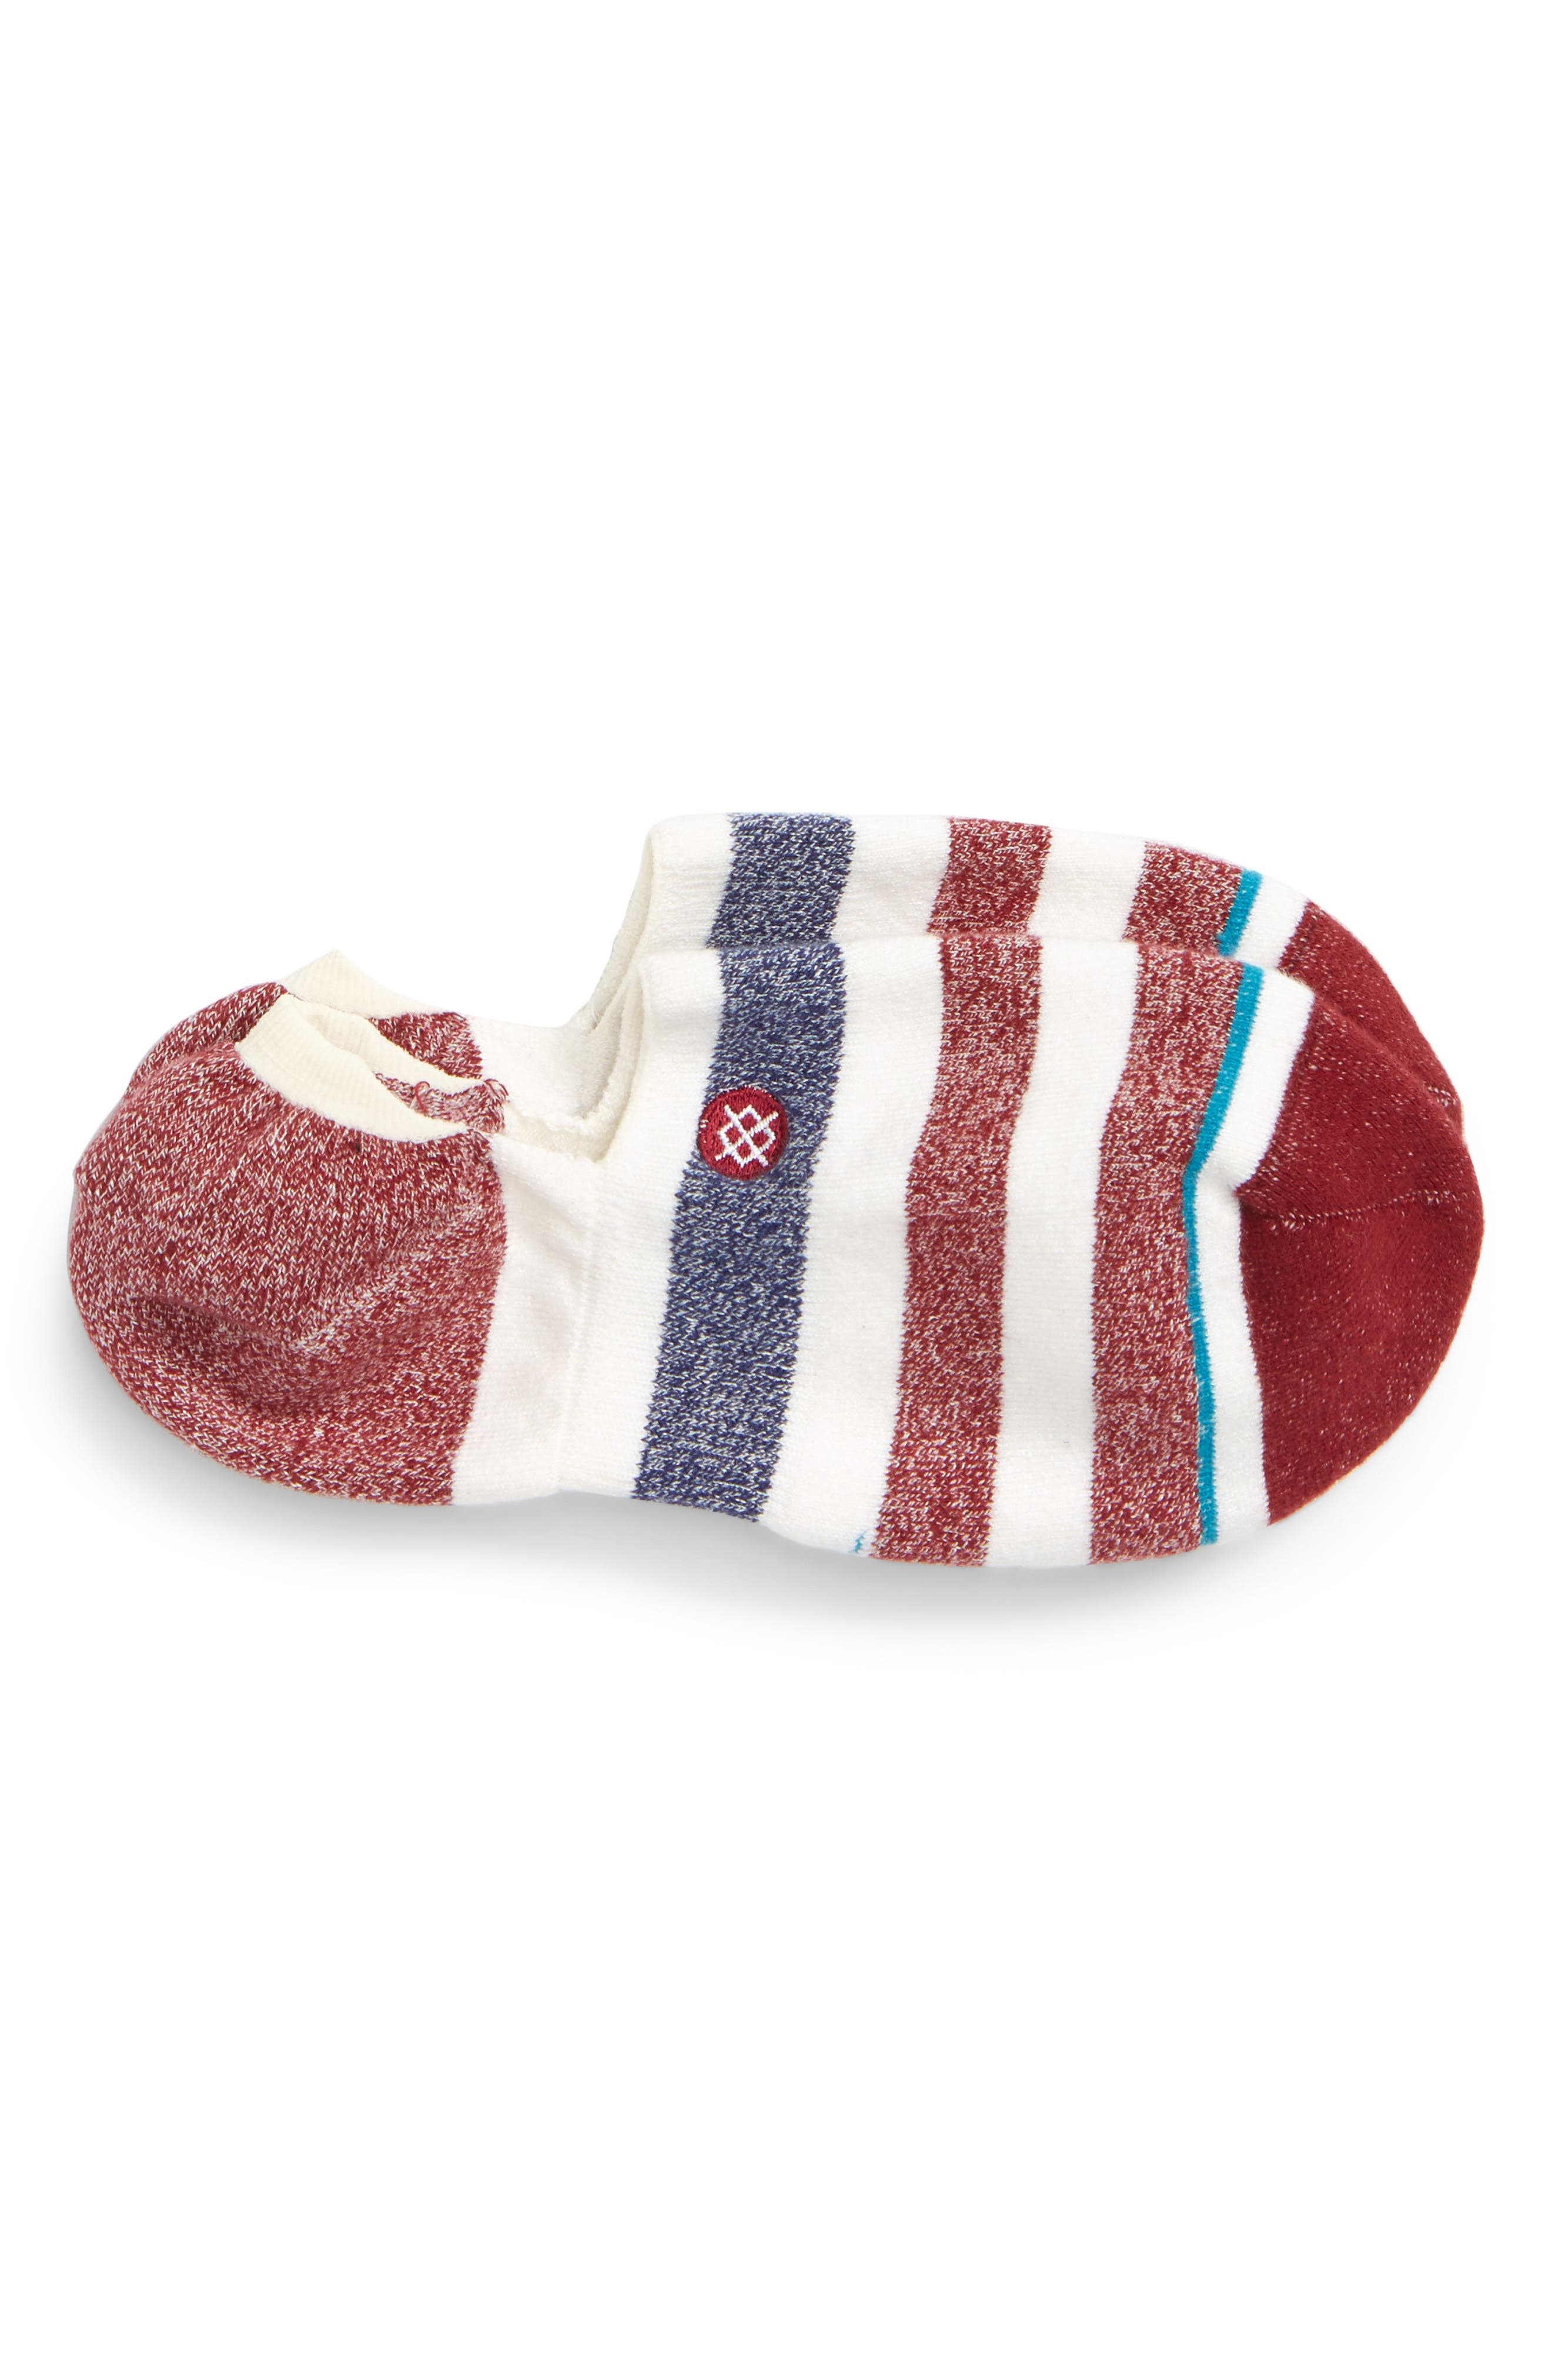 Robinsen Low Socks,                         Main,                         color, RED